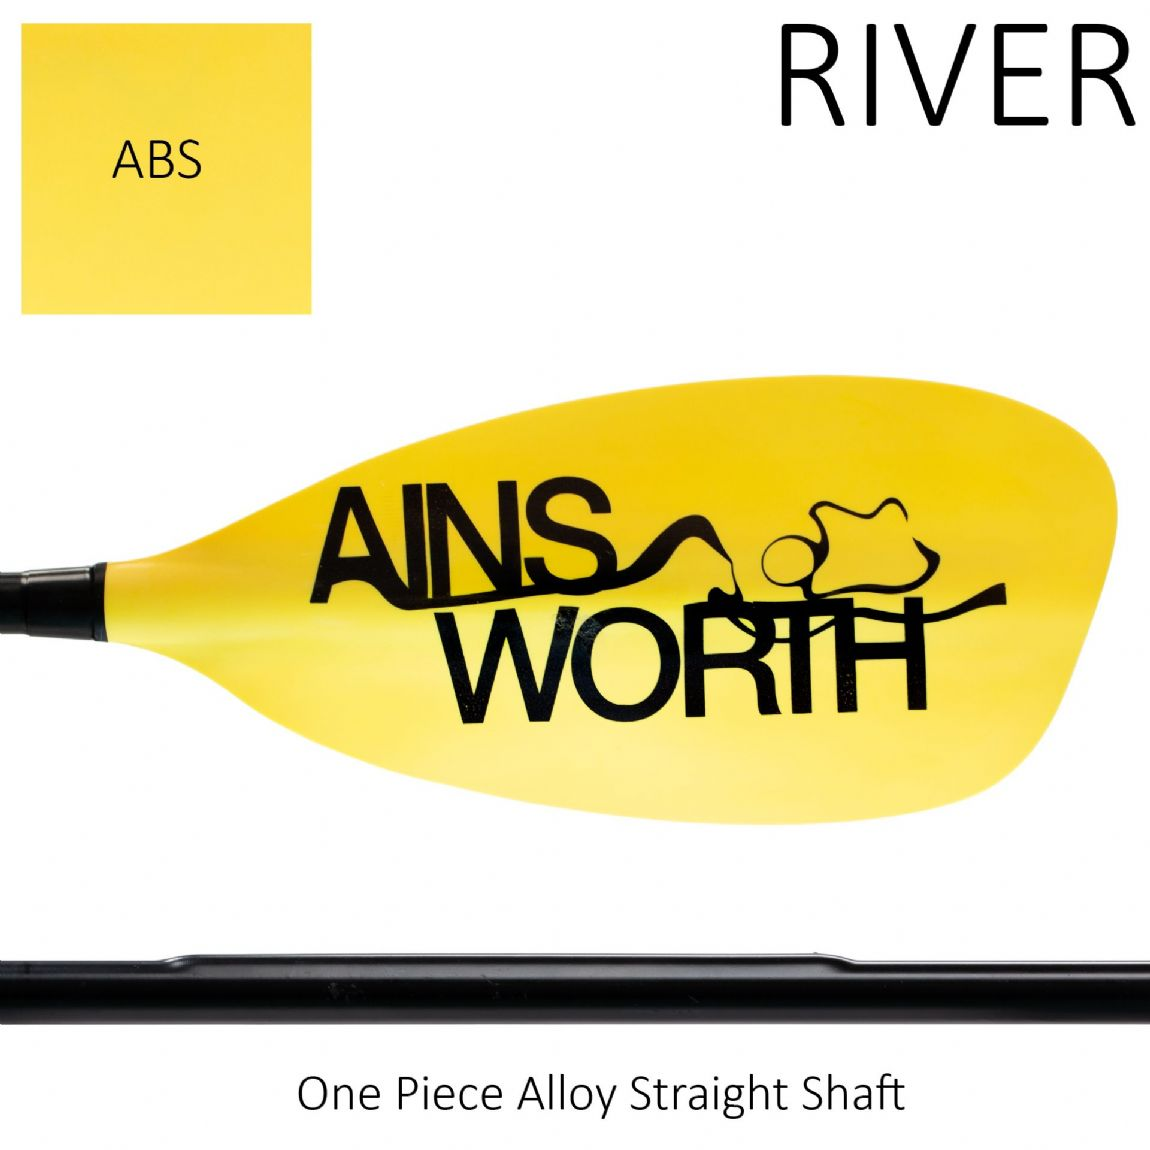 RIVER (ABS Plastic) One Piece Alloy Straight Shaft